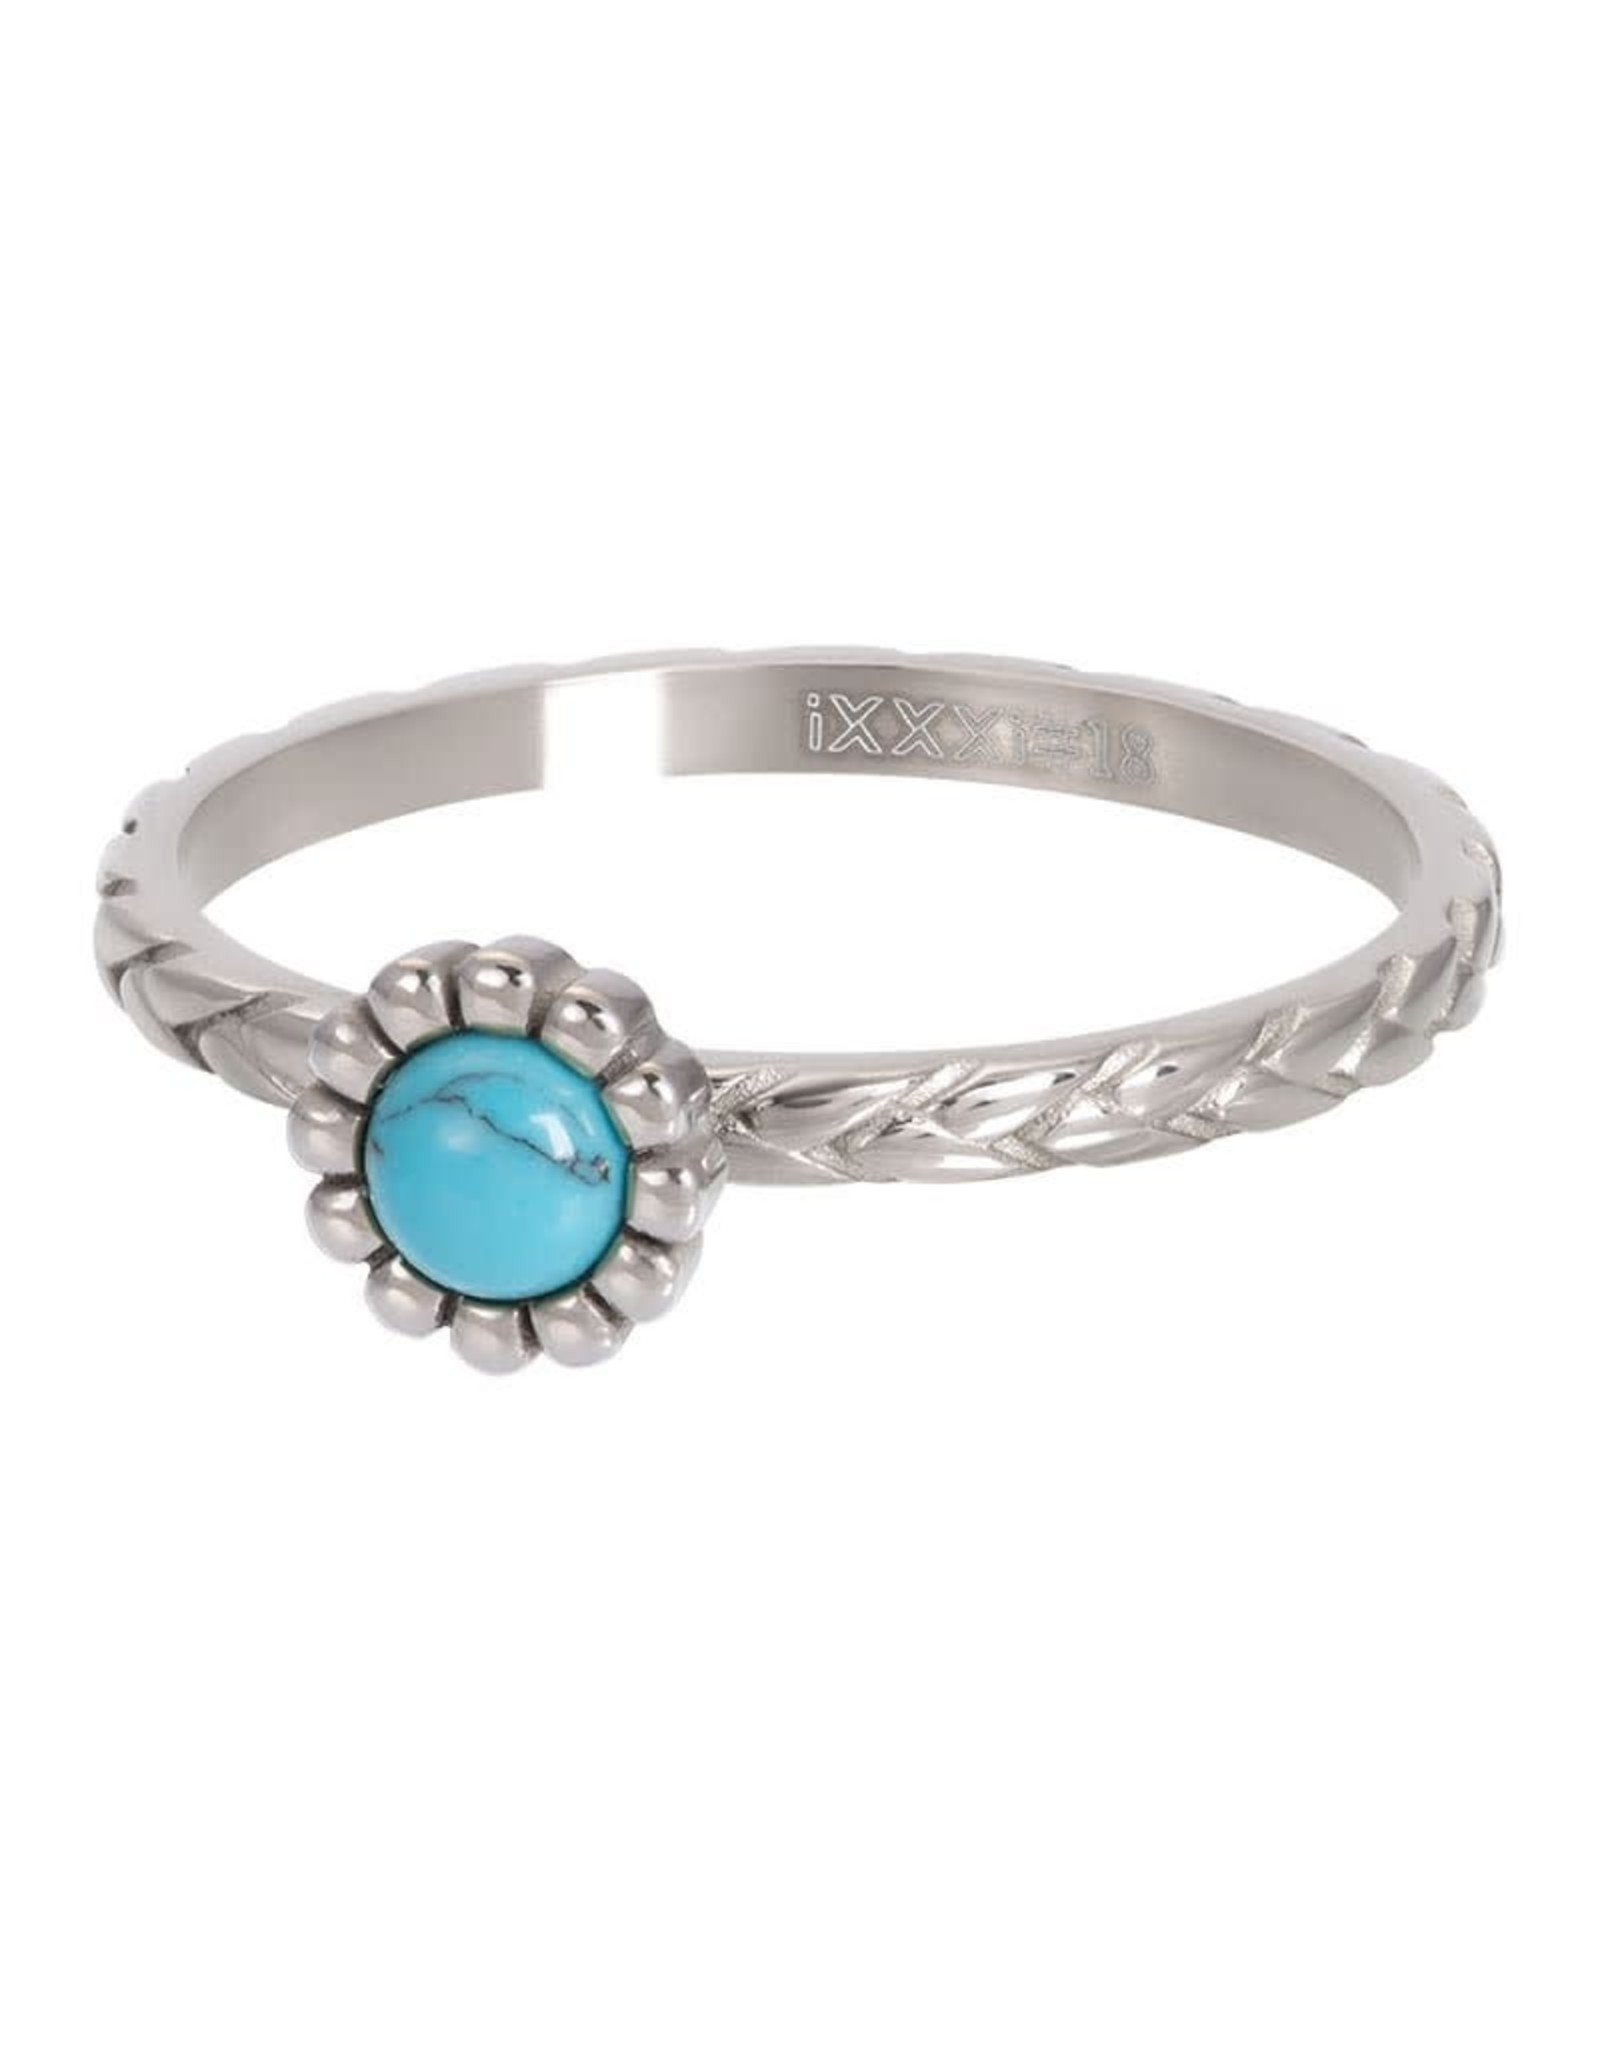 iXXXi Jewelry iXXXi vulring inspired turquoise - staal